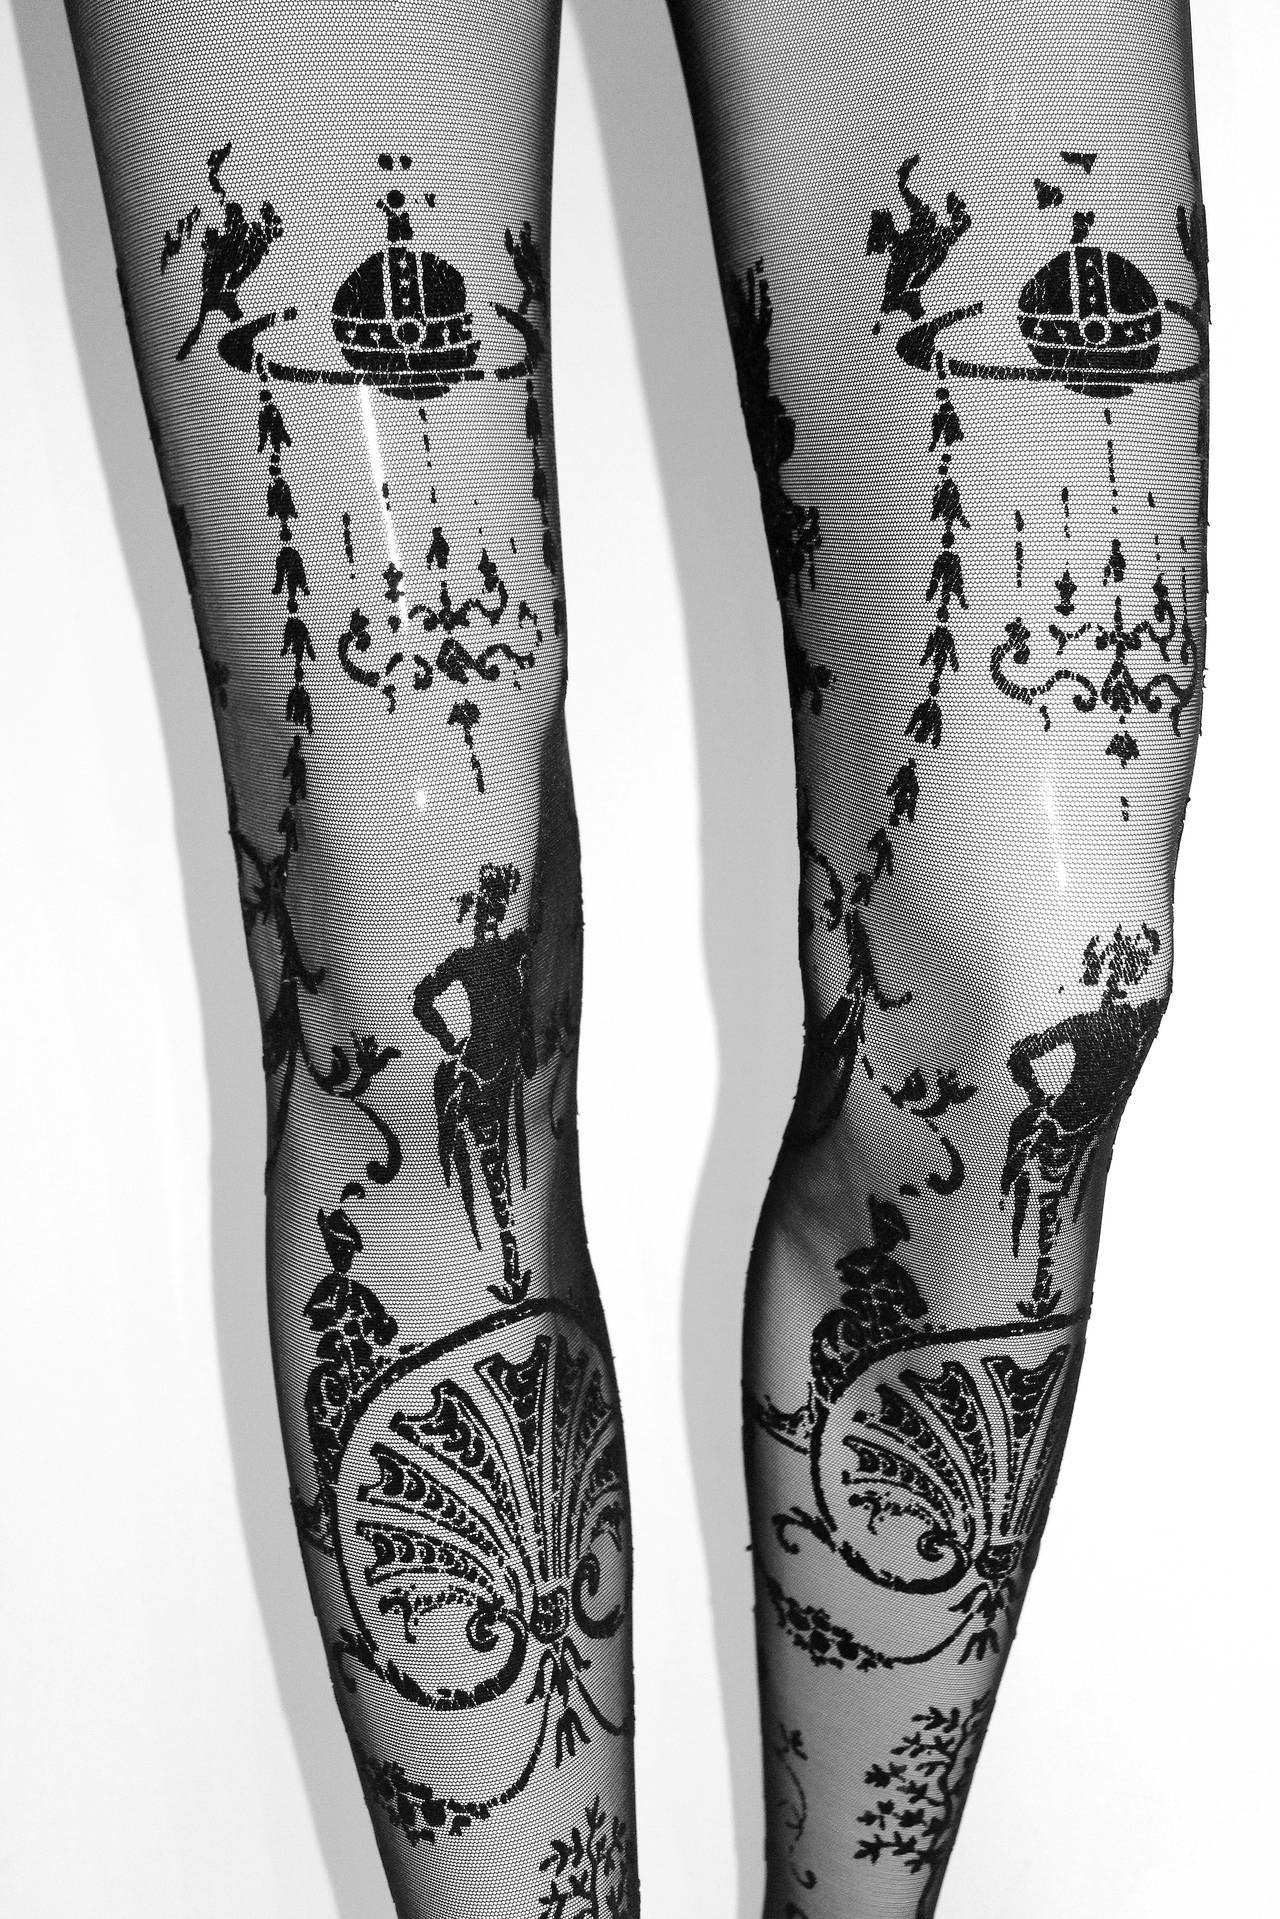 These sheer pantyhose are from the iconic Vivienne Westwood 'Portrait Collection' designed in 1990. They feature swirling rococo inspired print in black velvet. 